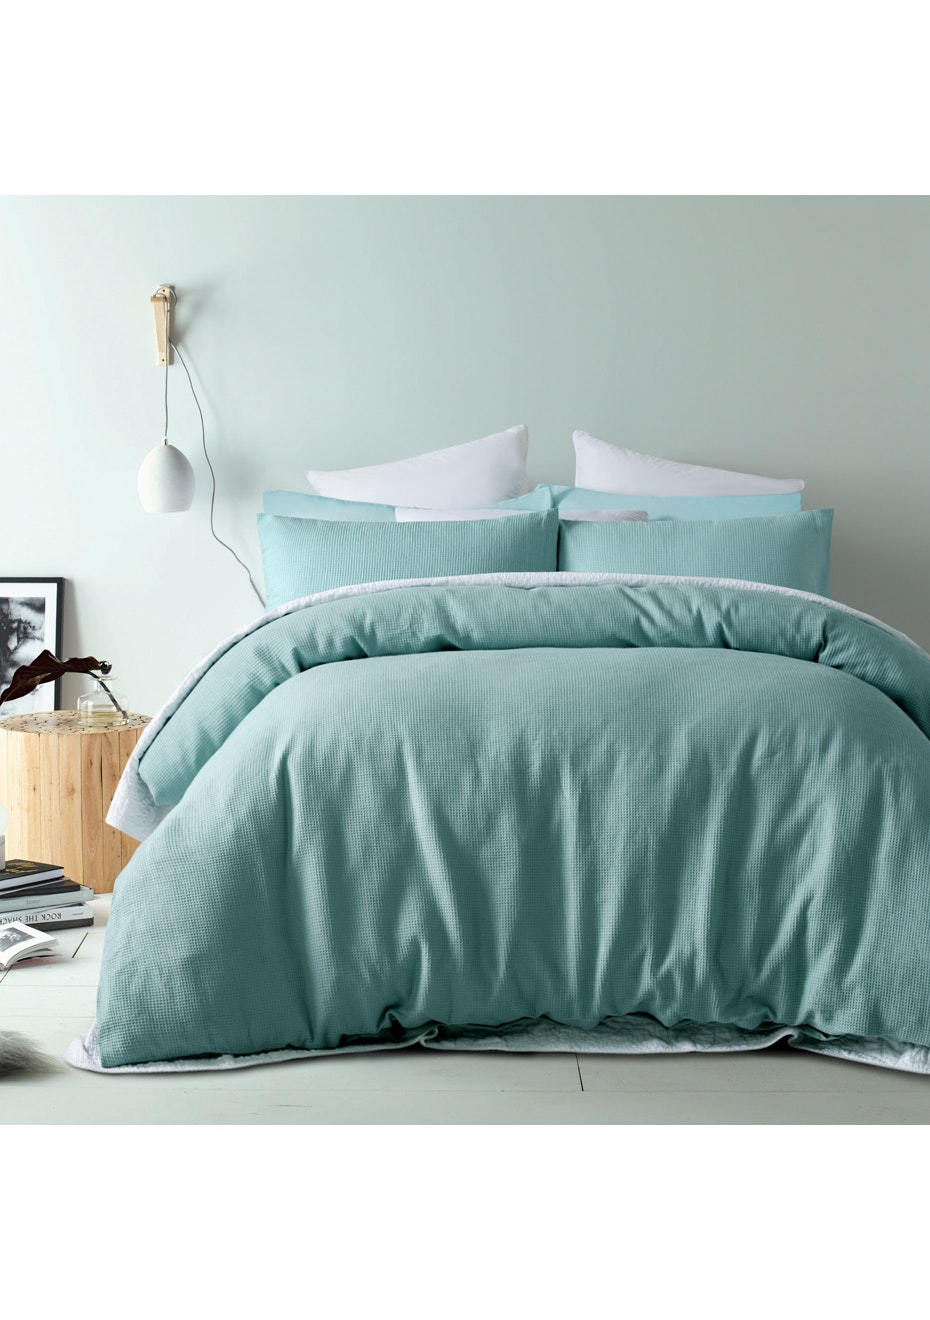 Ocean Breeze Waffle Linen Cotton Quilt Cover Set- King Bed